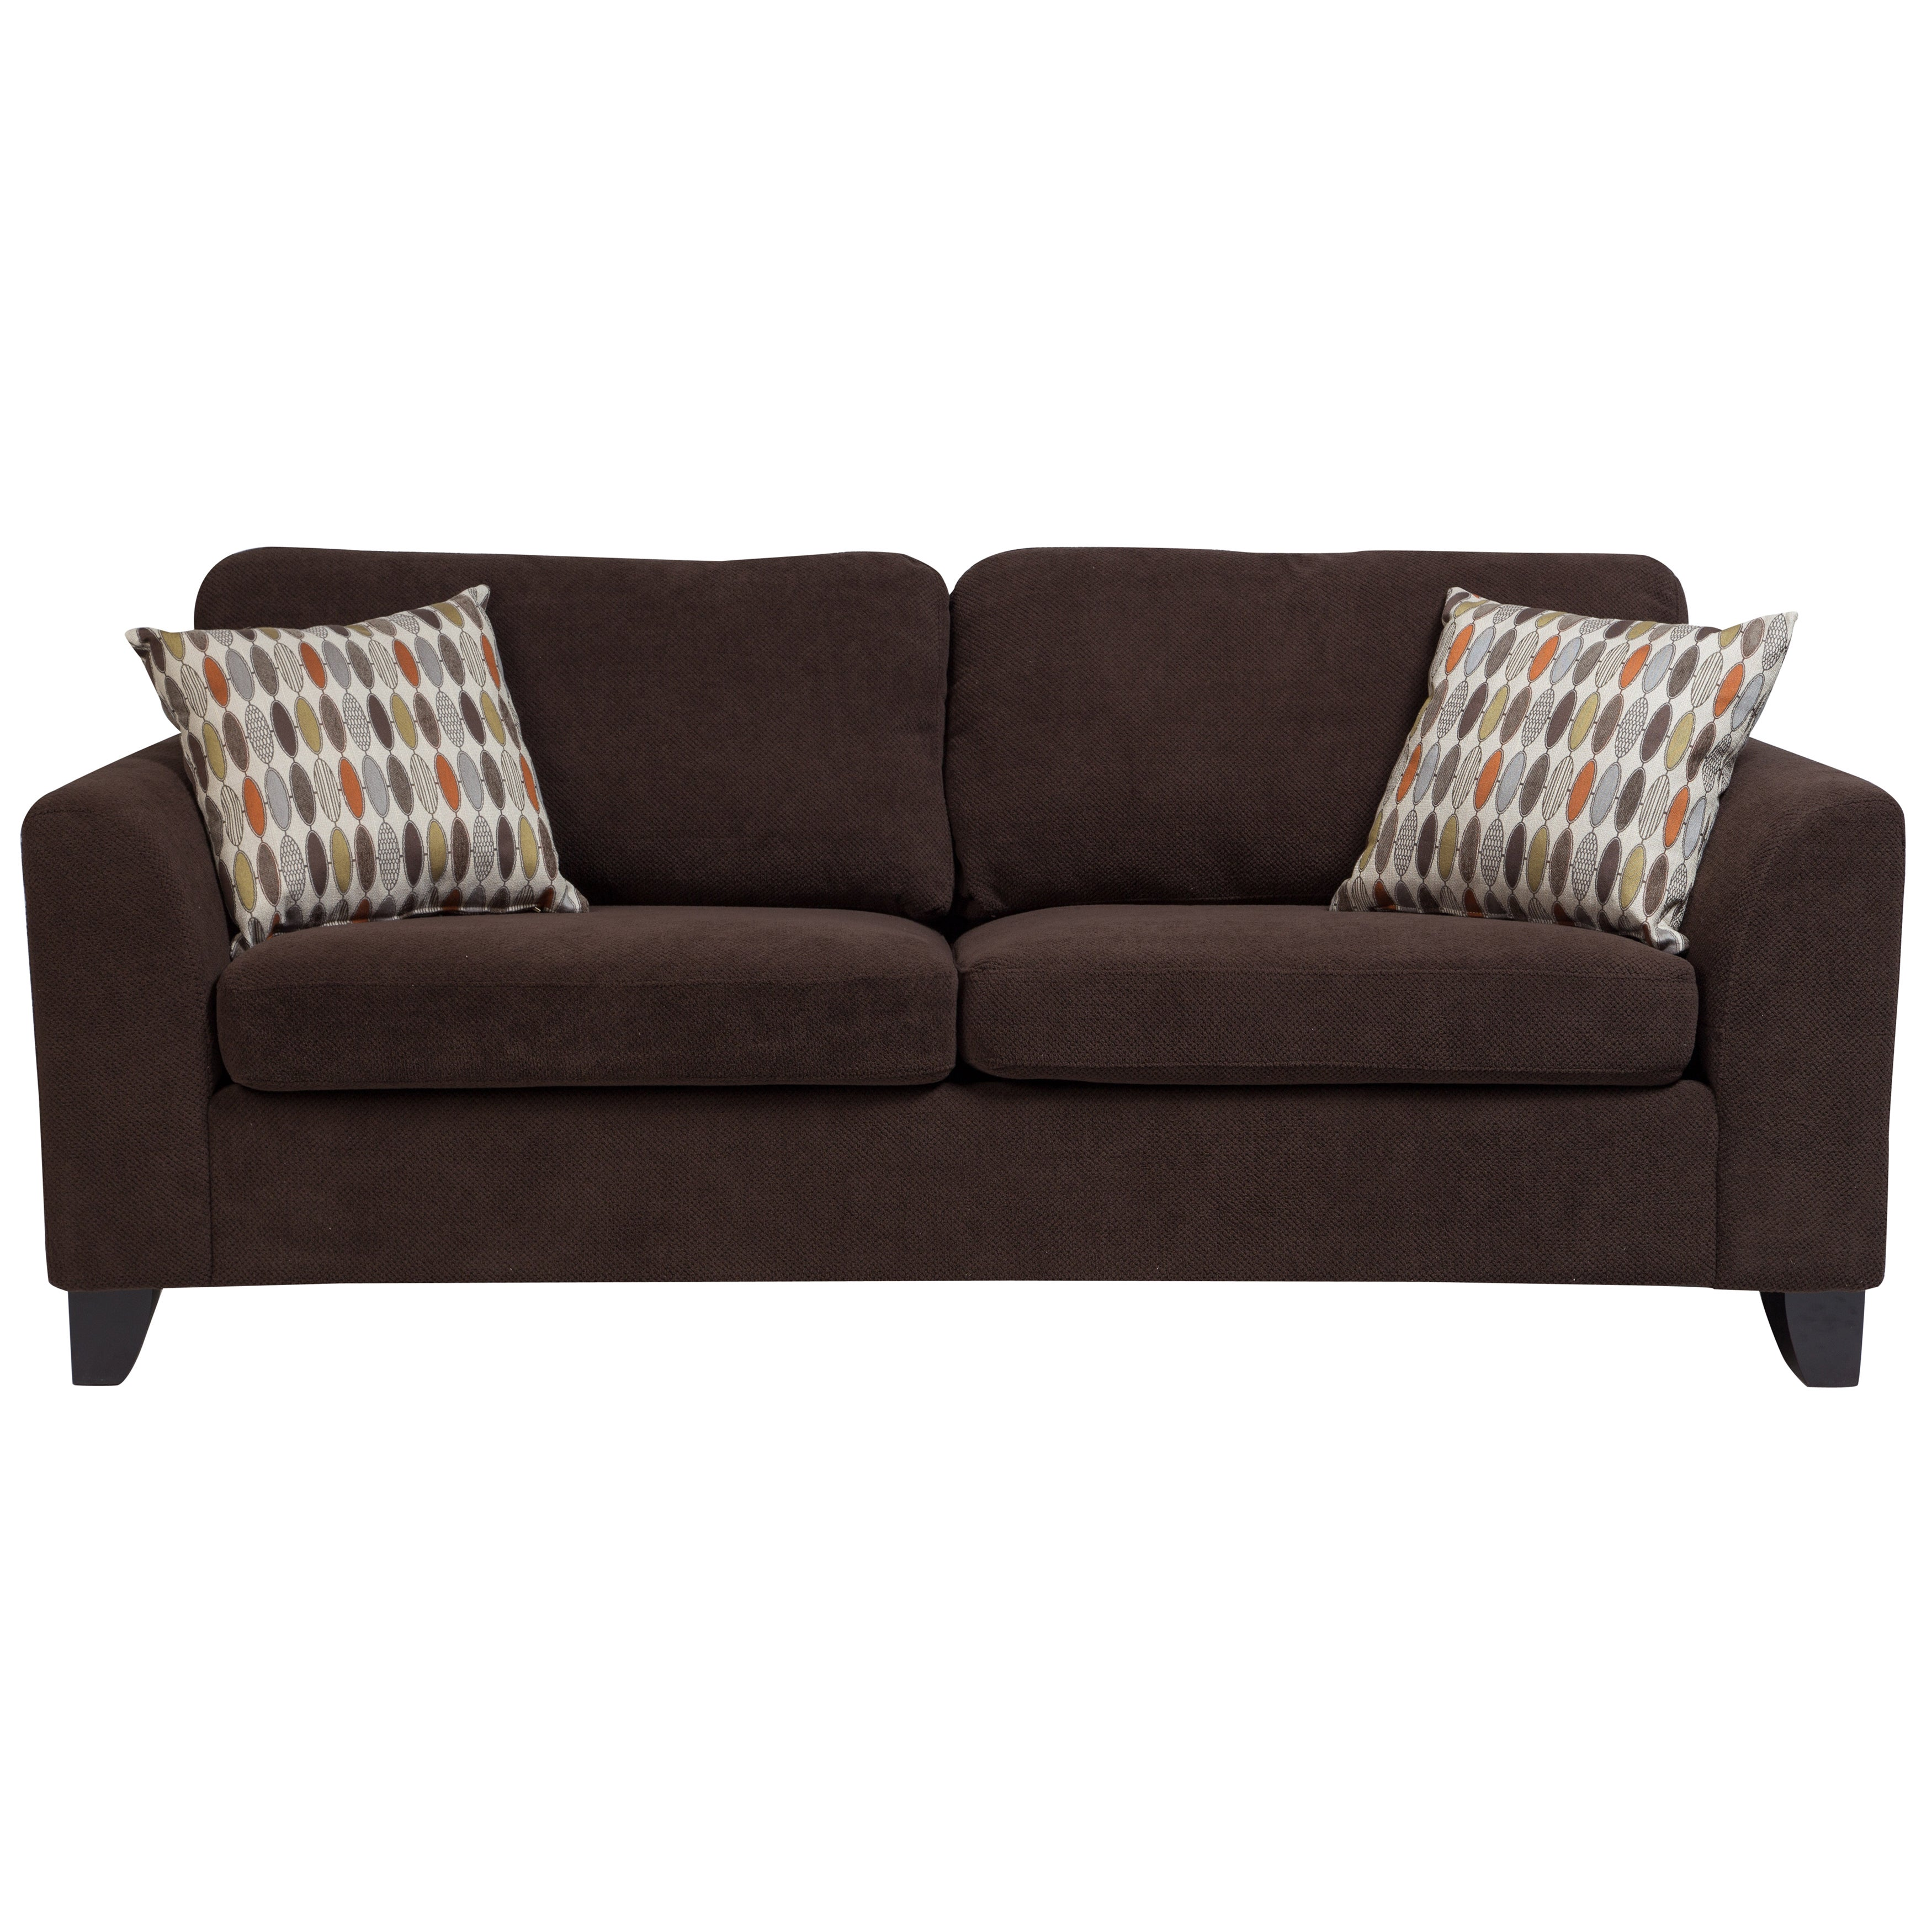 Shop porter brighton chocolate brown textured microfiber contemporary sleeper sofa with 2 woven accent pillows free shipping today overstock com